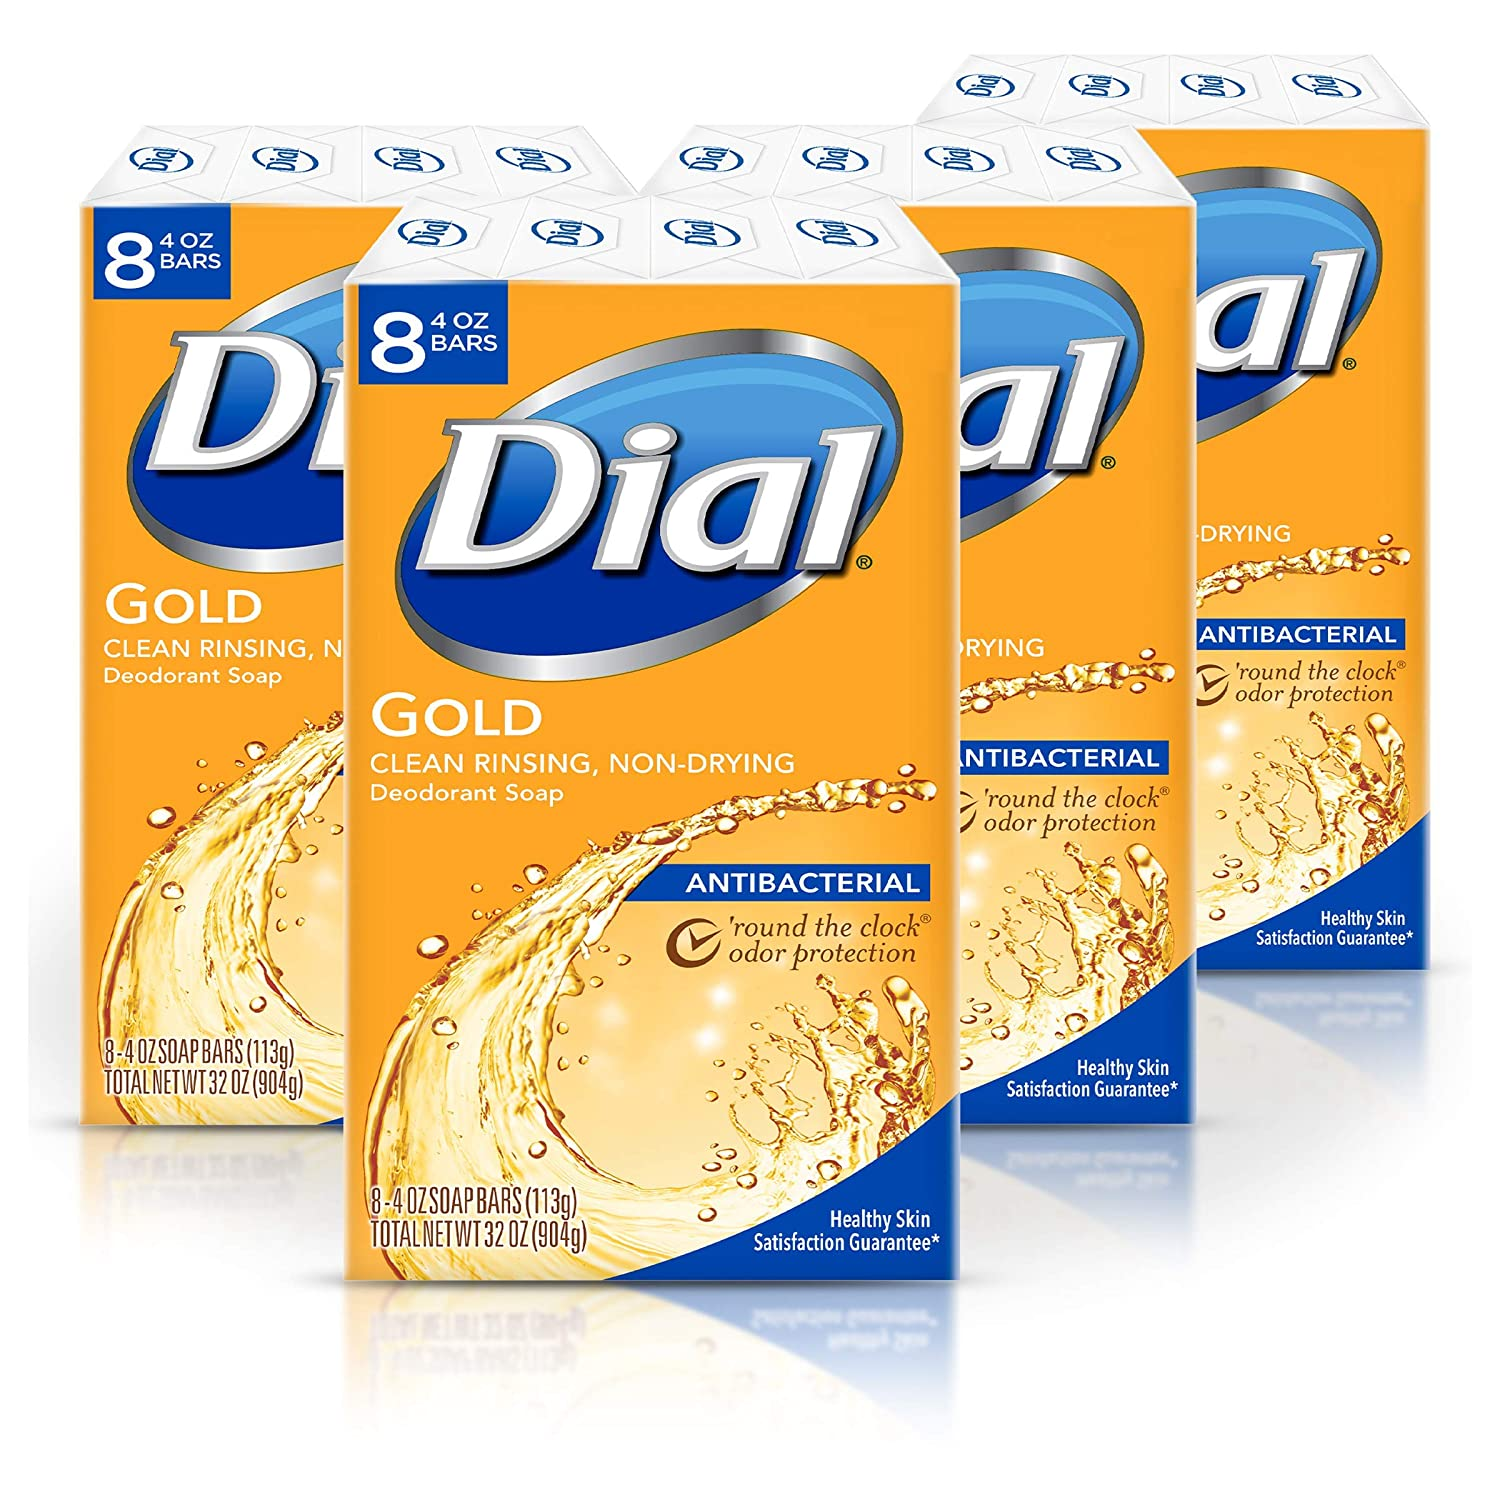 Four-pack of 8-count Dial Antibacterial Bar Soap, Gold